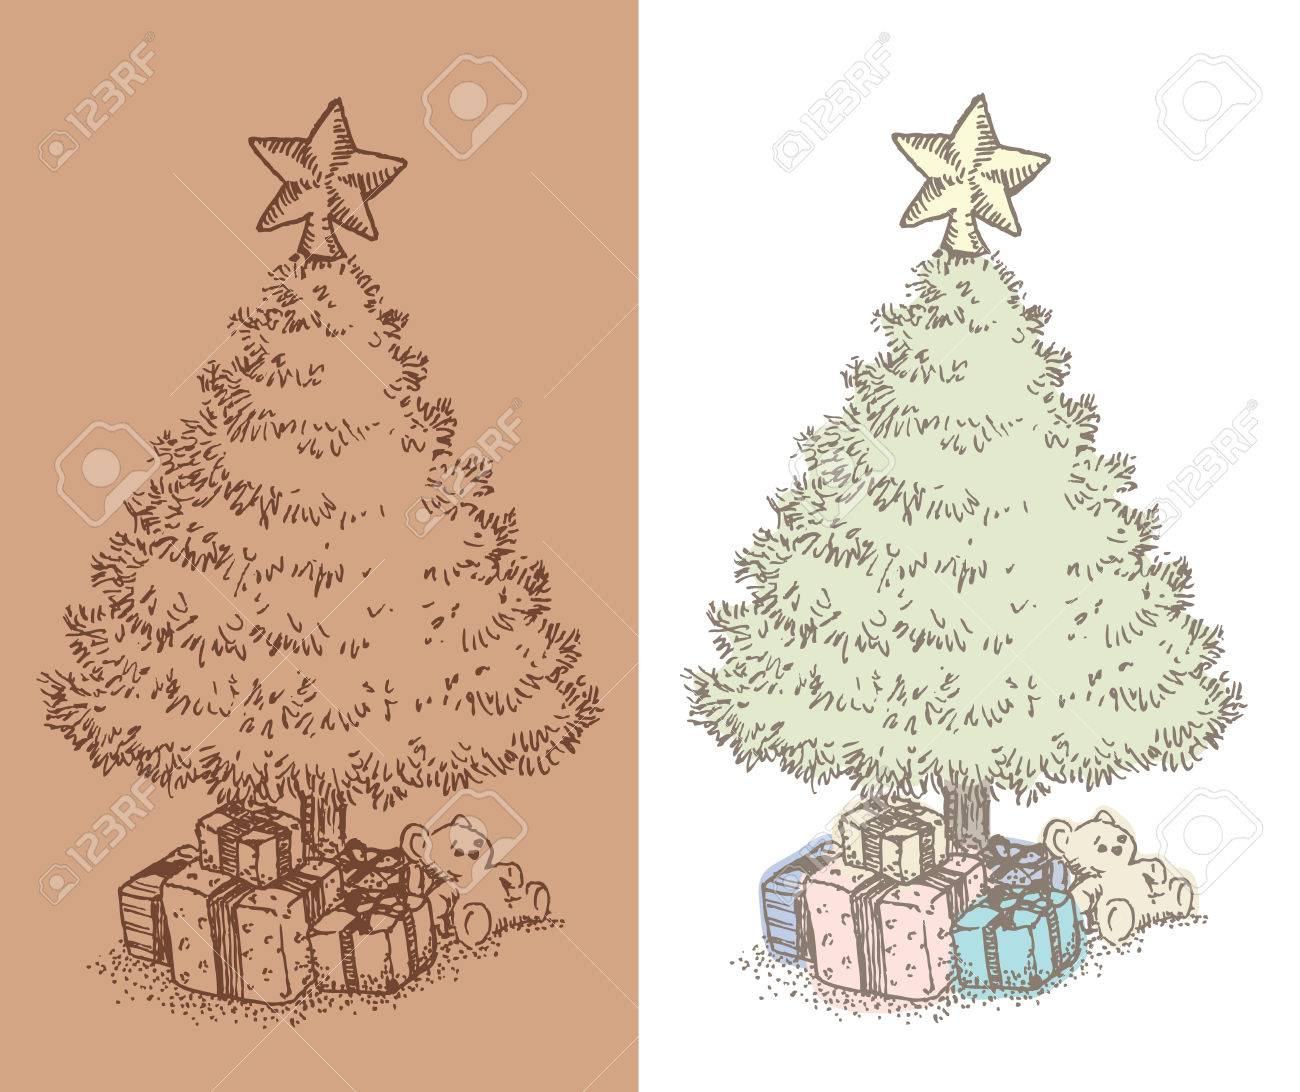 Hand Drawn Vintage Christmas Tree Drawing Vintage Style Ink Royalty Free Cliparts Vectors And Stock Illustration Image 45649162